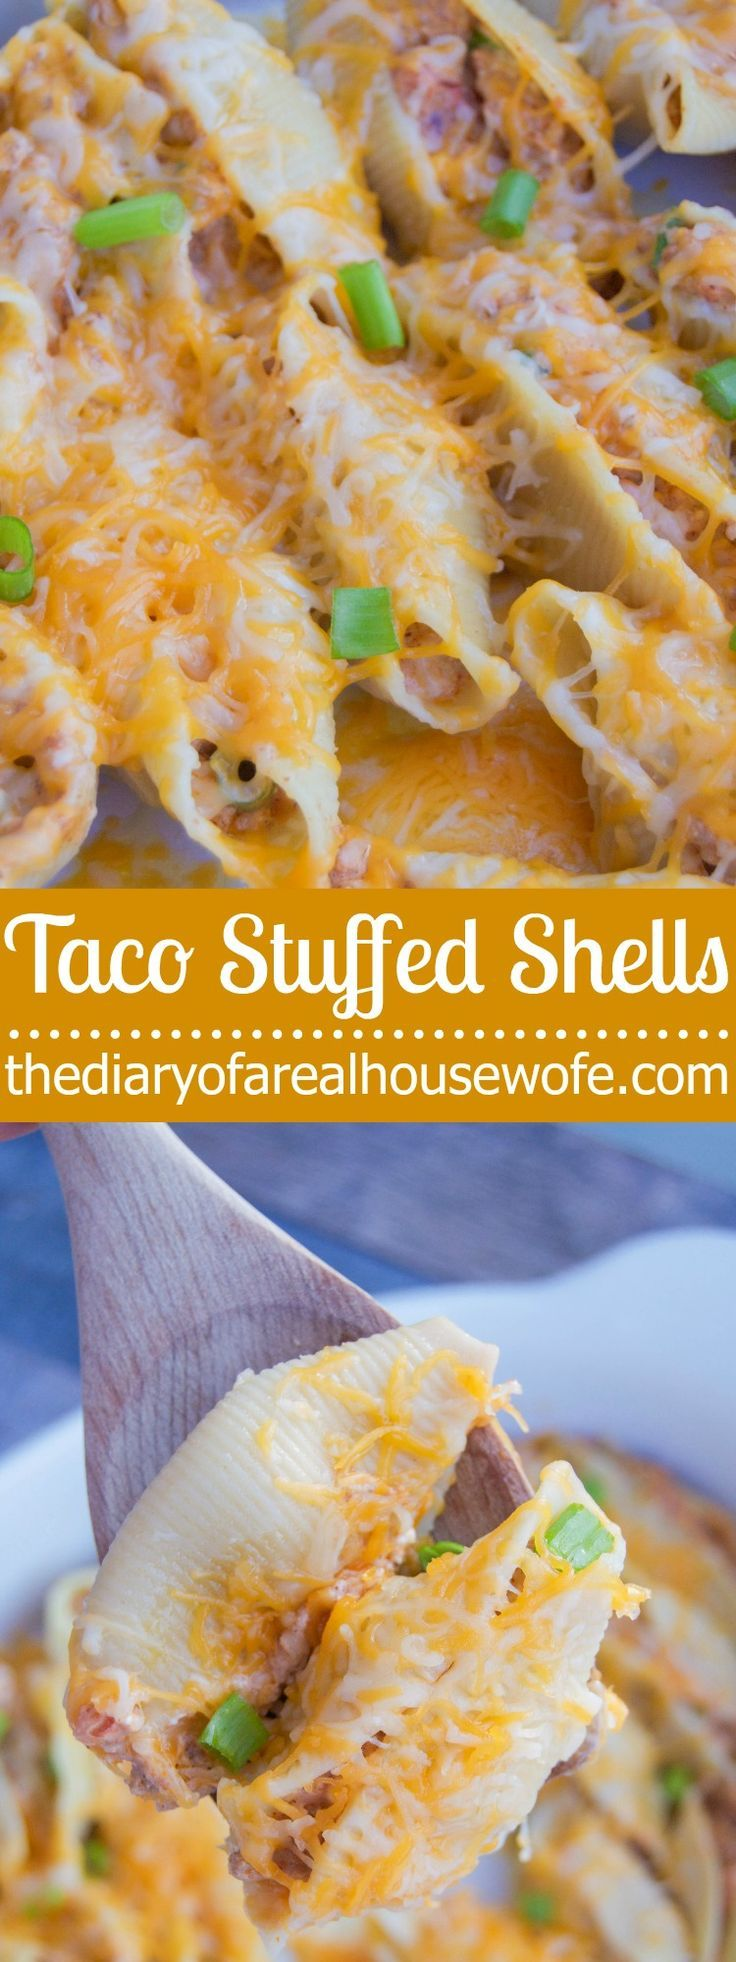 The BEST stuffed shell recipe. Taco Stuffed Shells. I LOVE this recipe. It's one of my all time favorites.